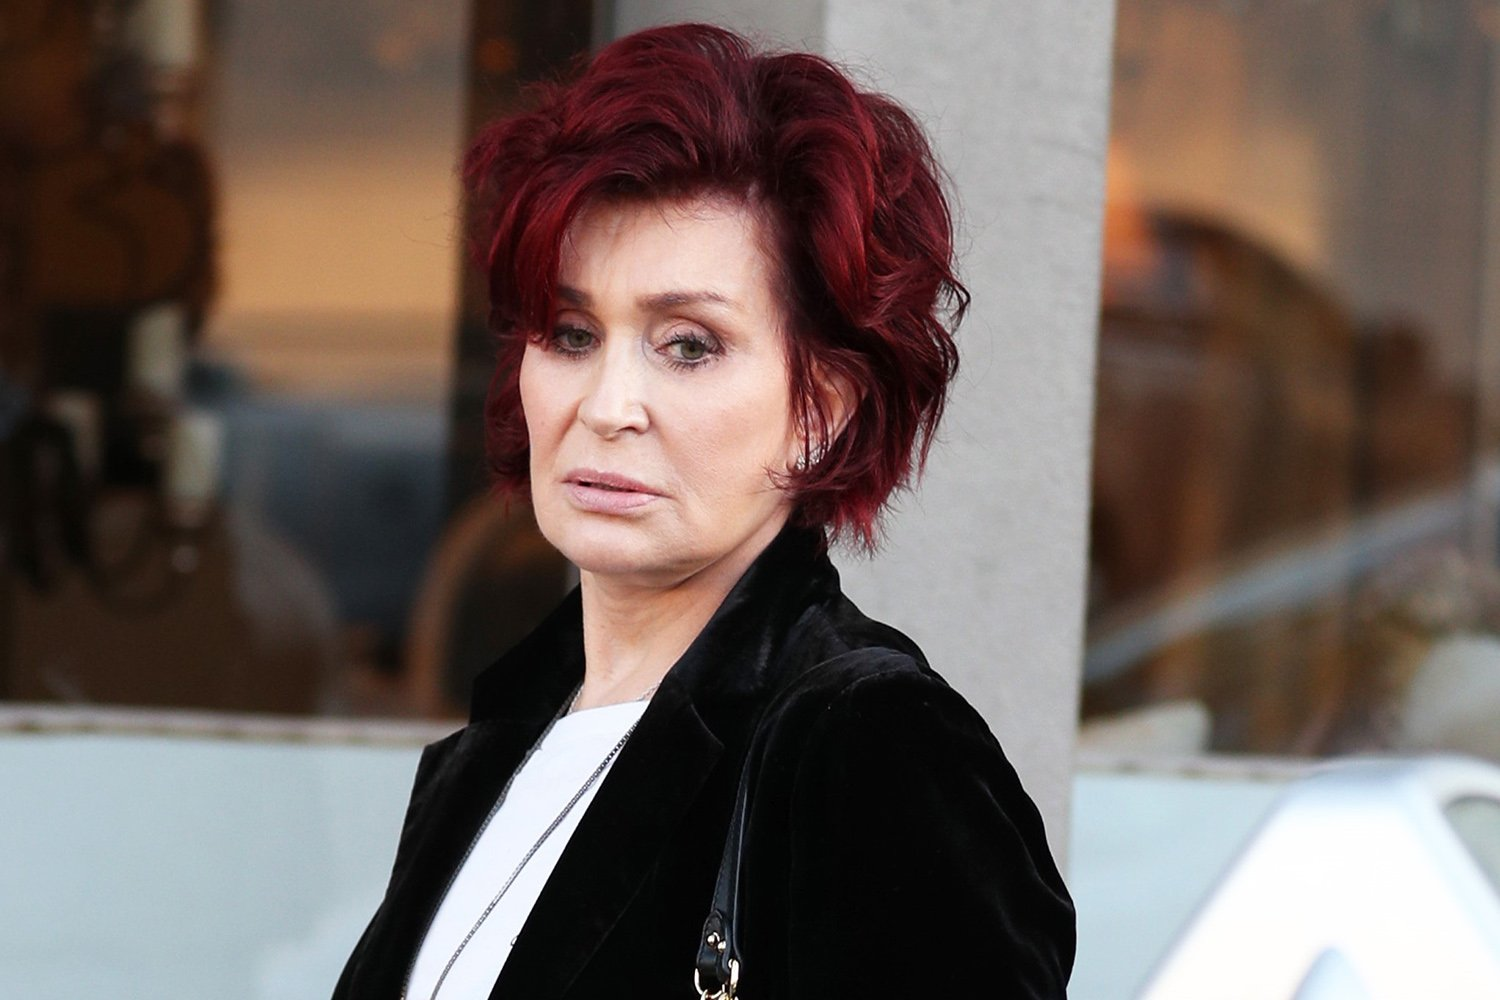 Sharon Osbourne says estranged brother 'fat-shamed' her and they haven't spoken in 13 years